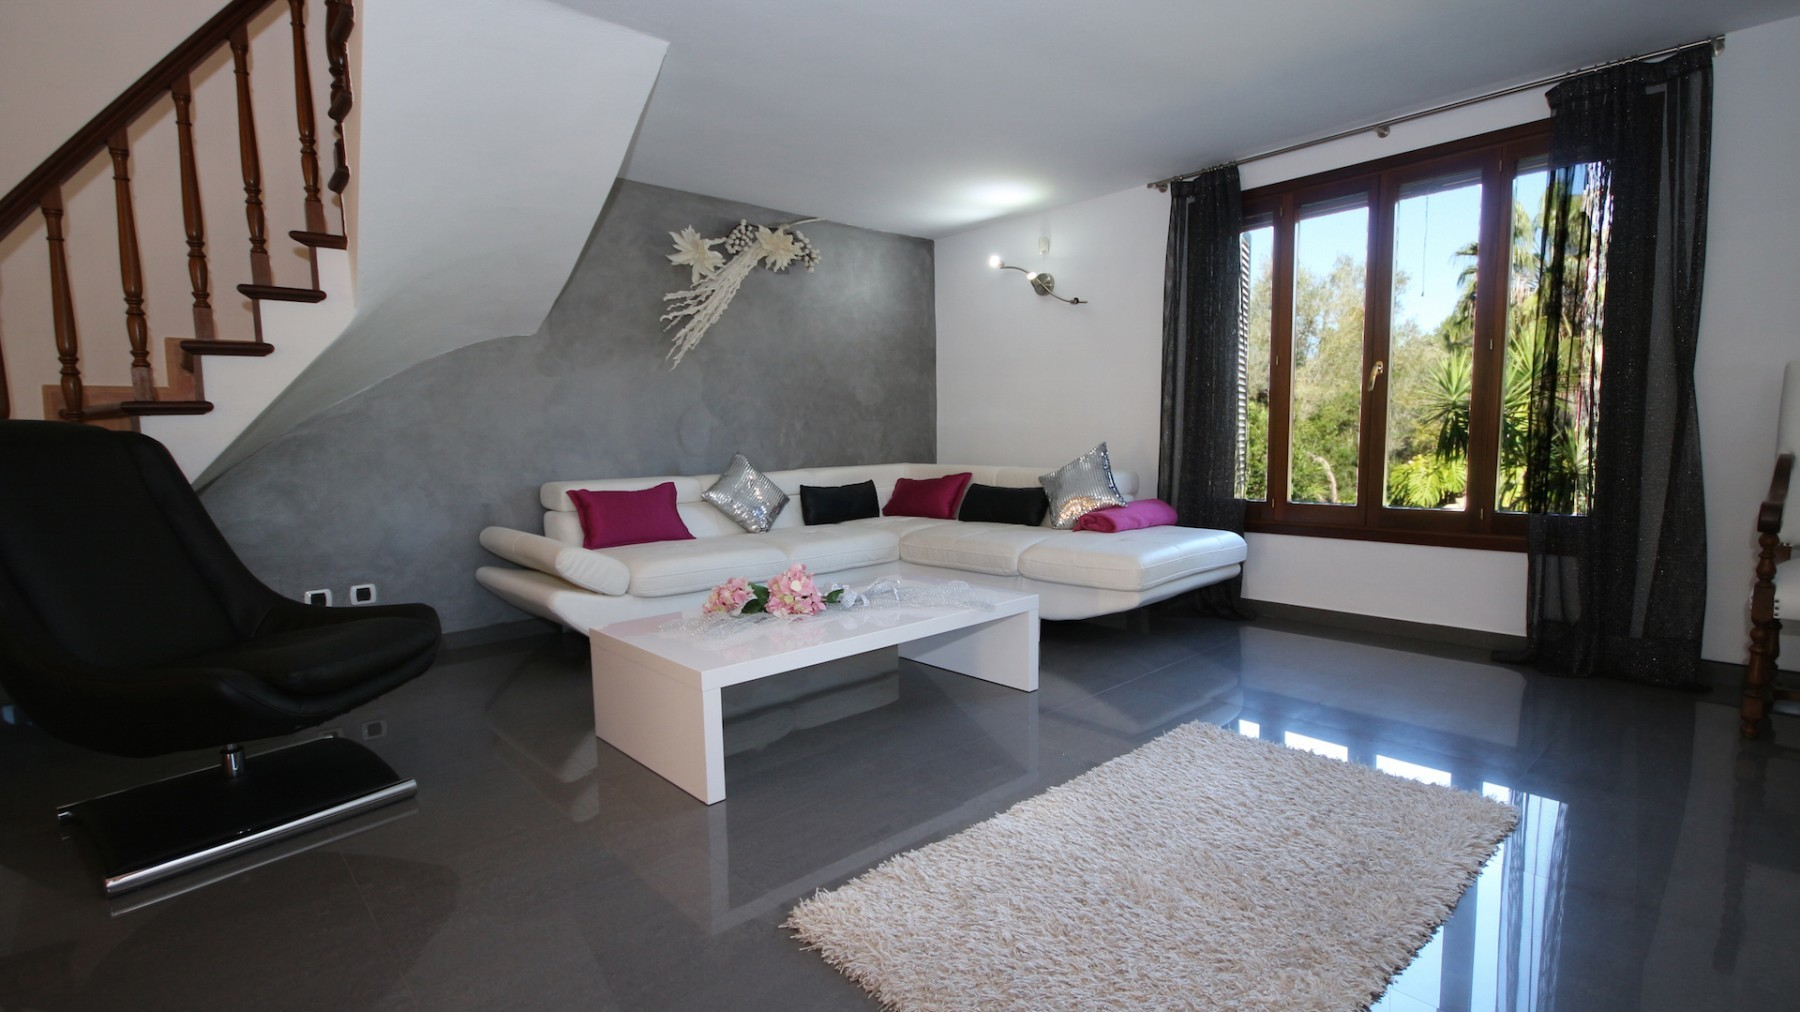 Living Style Couchtisch Aldi Villa With Pool For 8 People In Muro, Mallorca